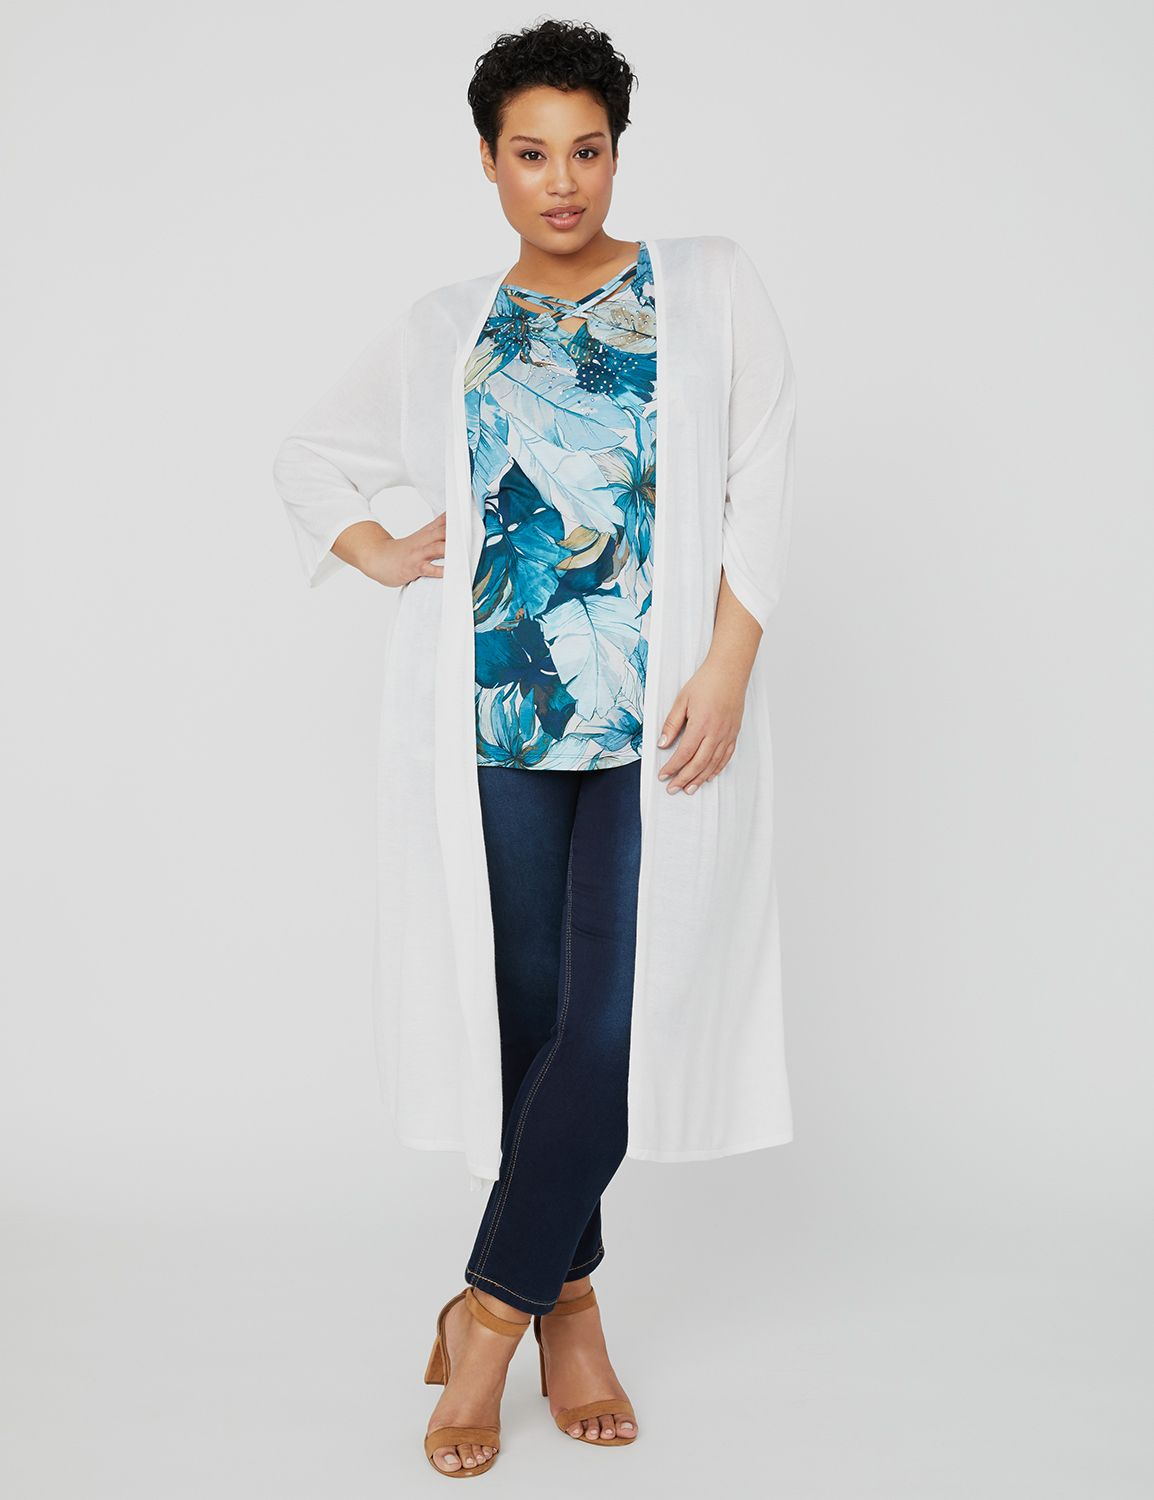 Ocean Waves Cardigan 1087803 Convertible Cardigan MP-300098485